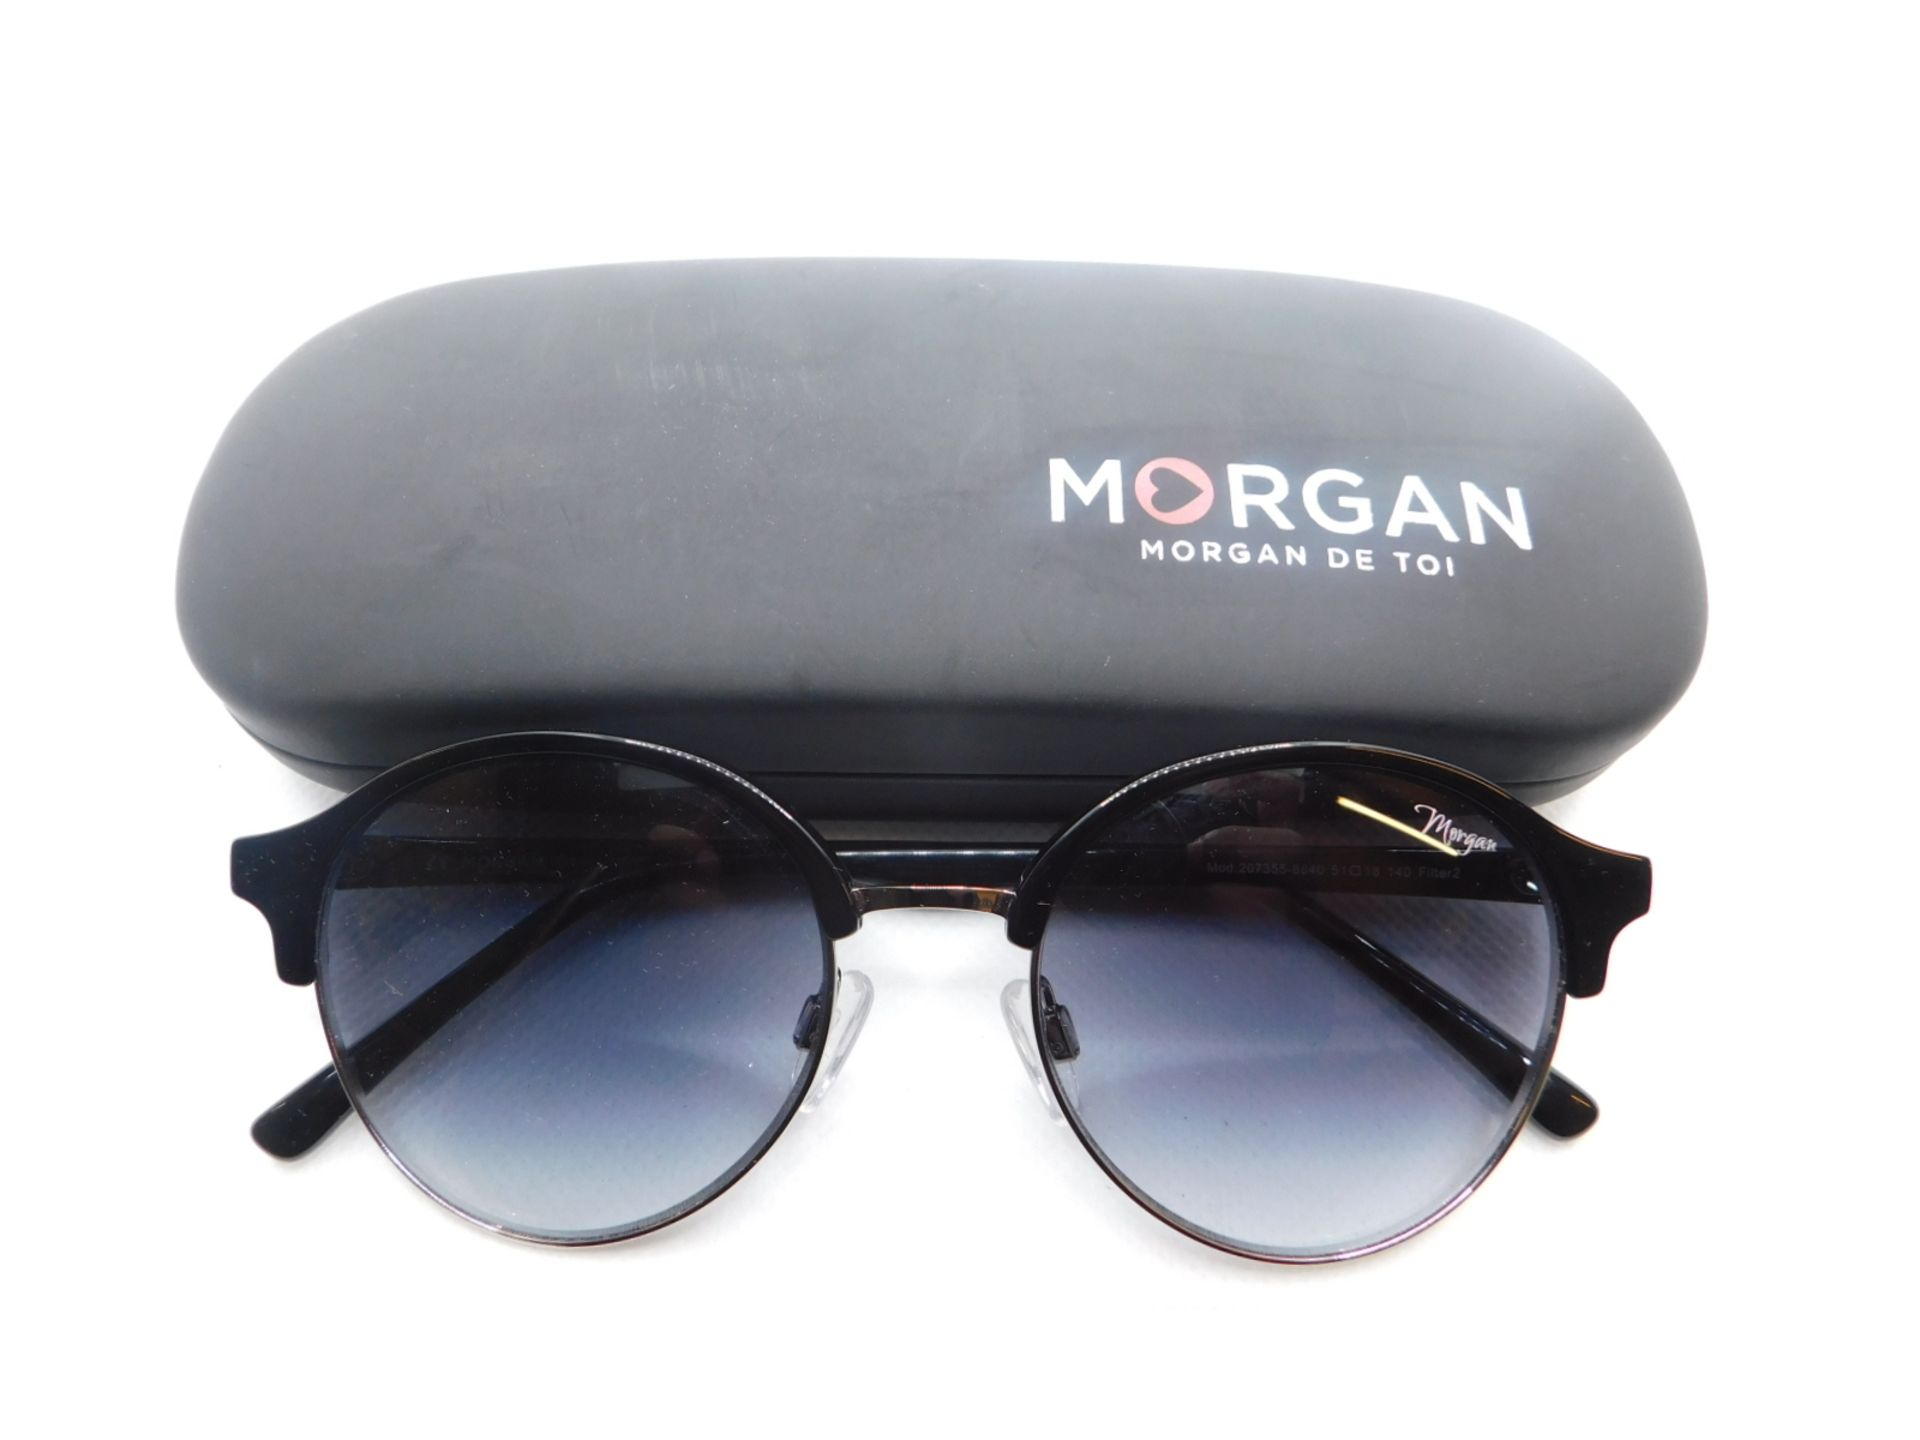 1 MORGAN 2073558840 SUNGLASSES WITH CASE RRP £99.99